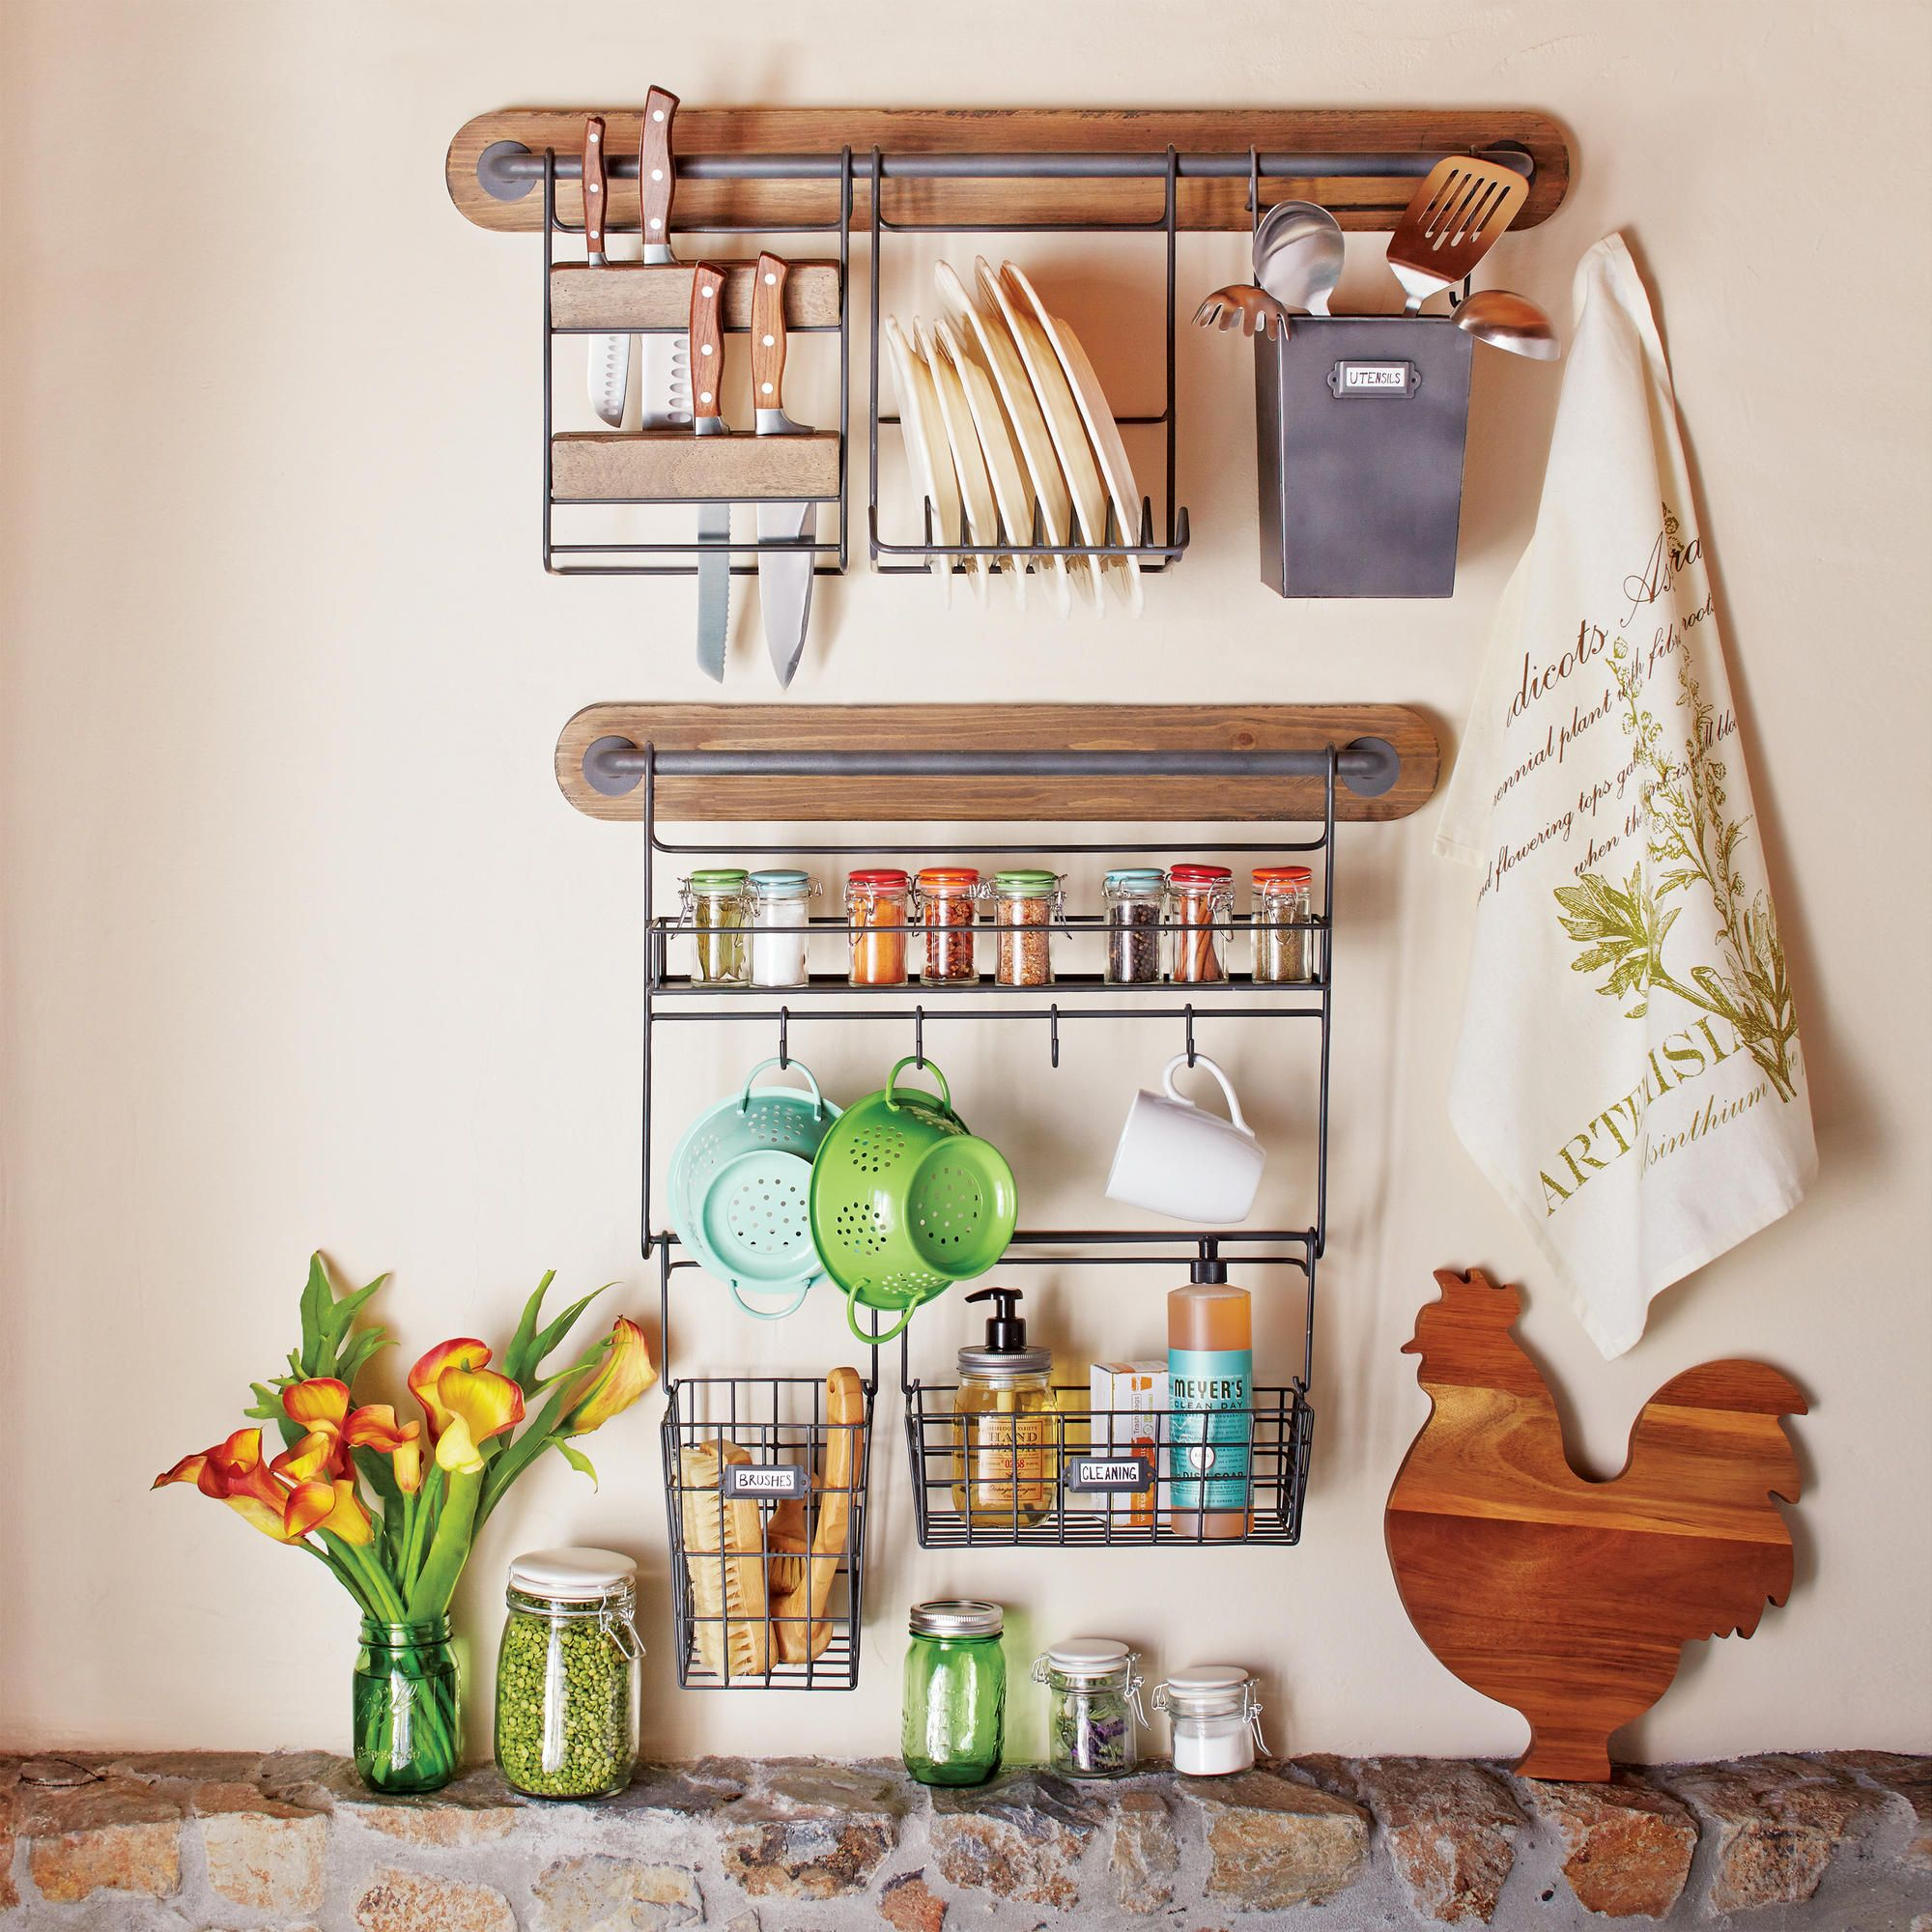 Modular Kitchen Wall Storage Hang Long Bar Mix And Match E Rack Plate Utensil Caddy Knife Etc Cost Plus World Market